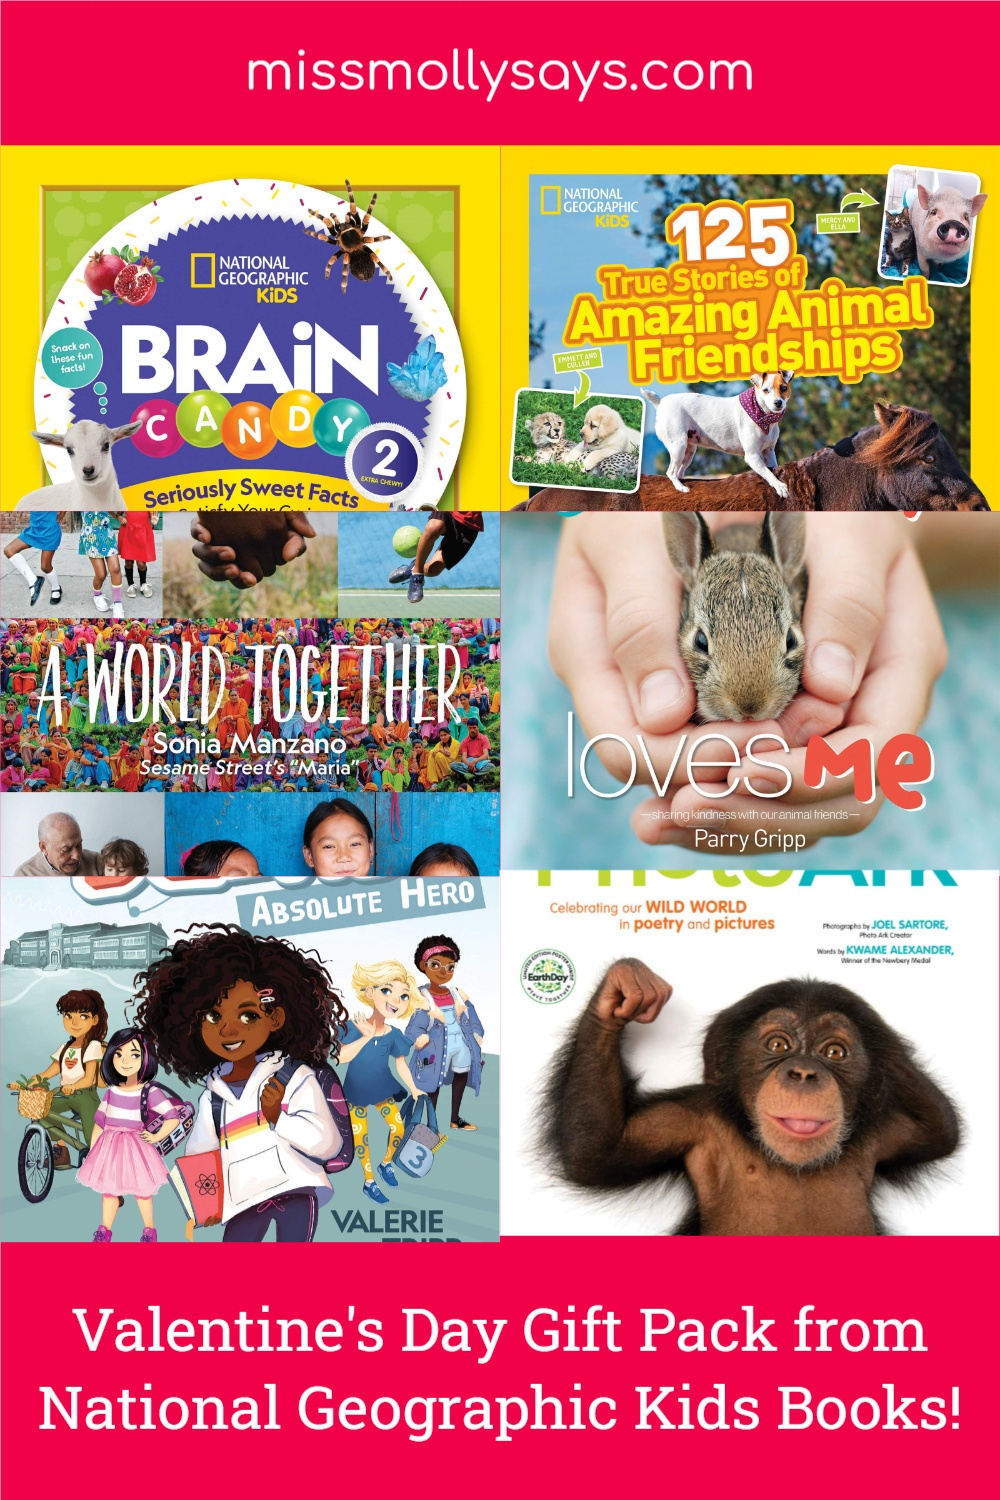 National Geographic Kids Valentine's Day Gift Pack Giveaway!